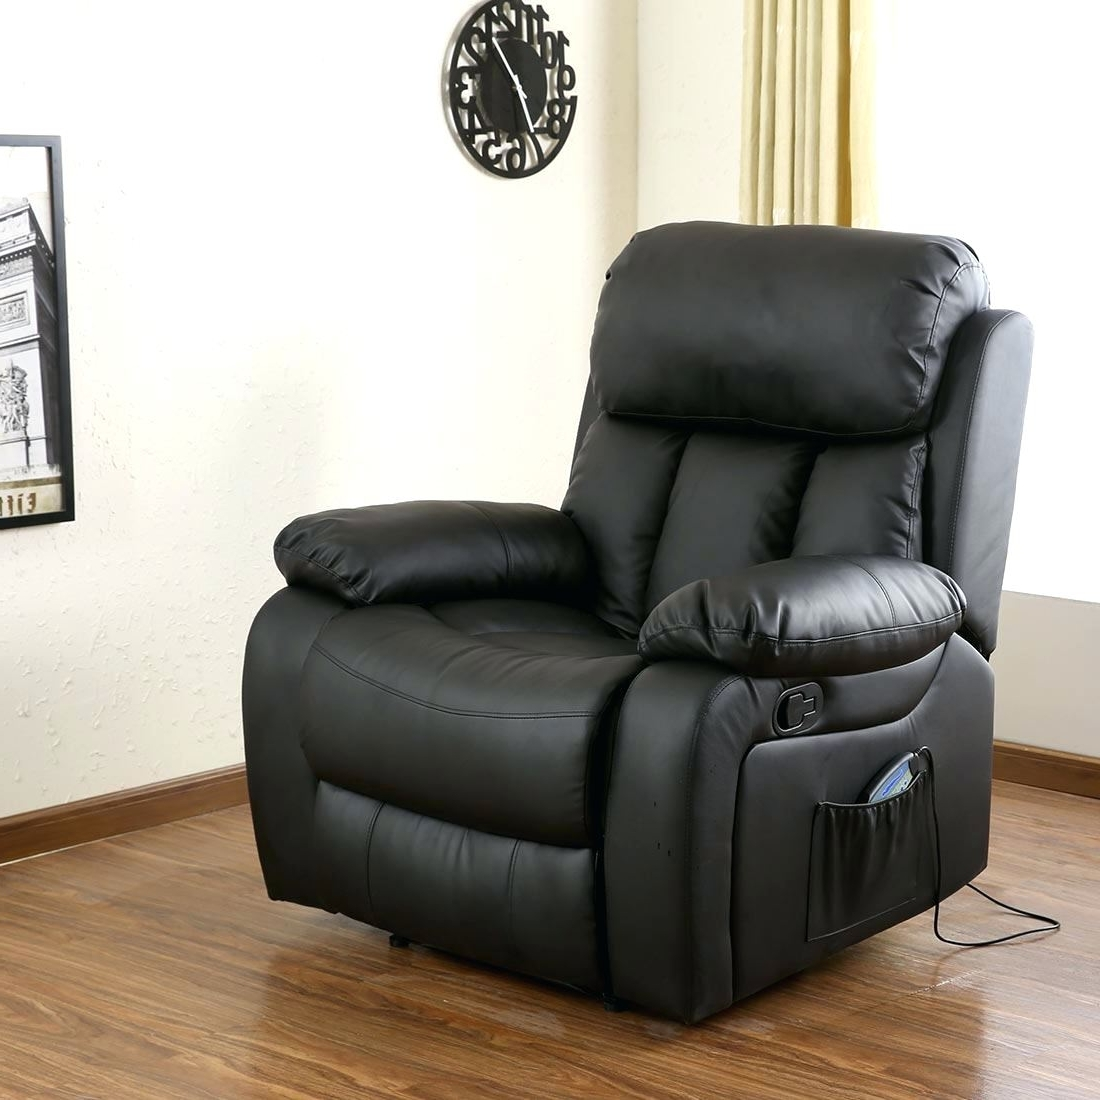 Latest Sofa Lounge Chair Black Accent Lounge Chair Sofa Bed Sofa Sleeper Within Varossa Chaise Lounge Recliner Chair Sofabeds (View 8 of 15)